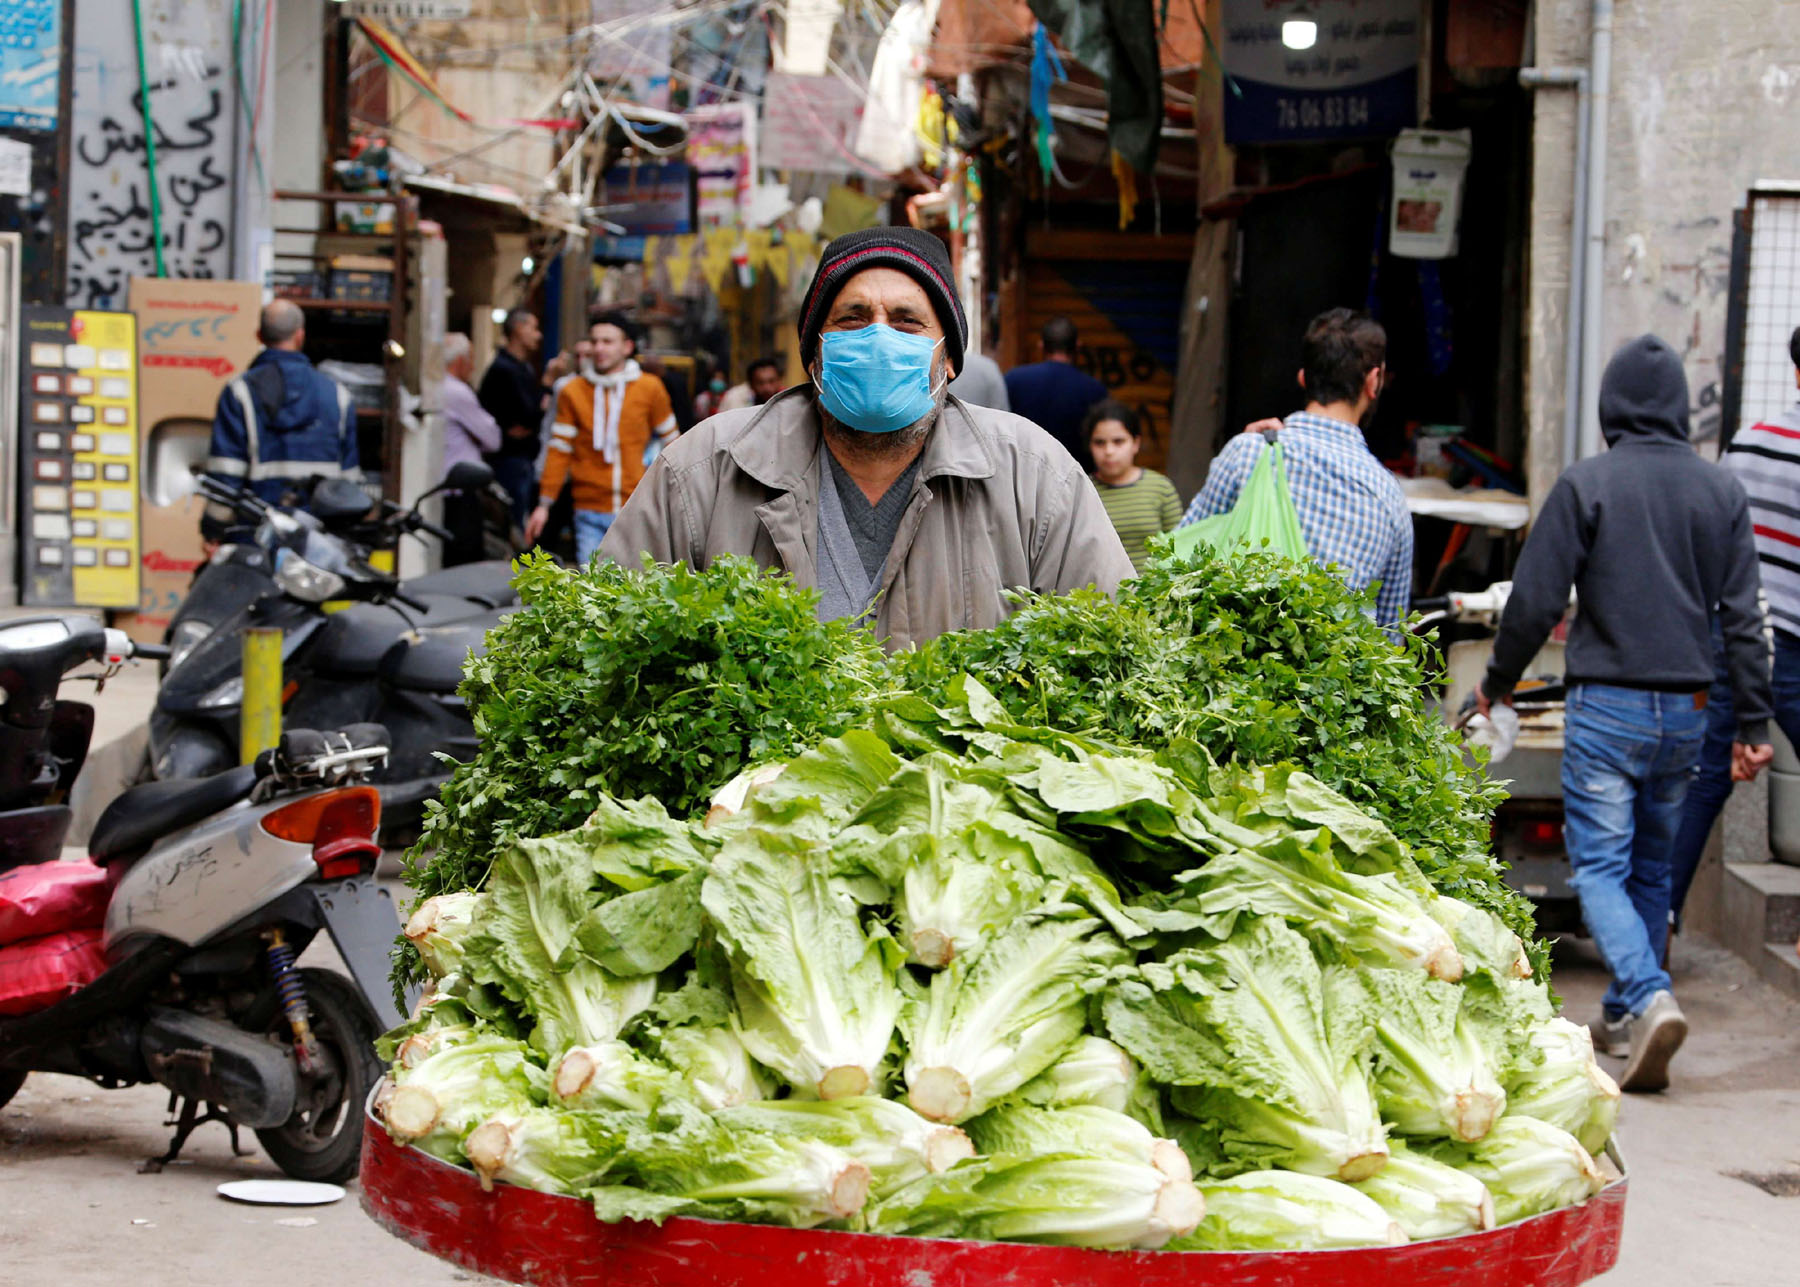 A street vendor wearing a face mask pushes his cart in Shatila Palestinian refugee camp in Beirut's suburbs, last March. (Reuters)